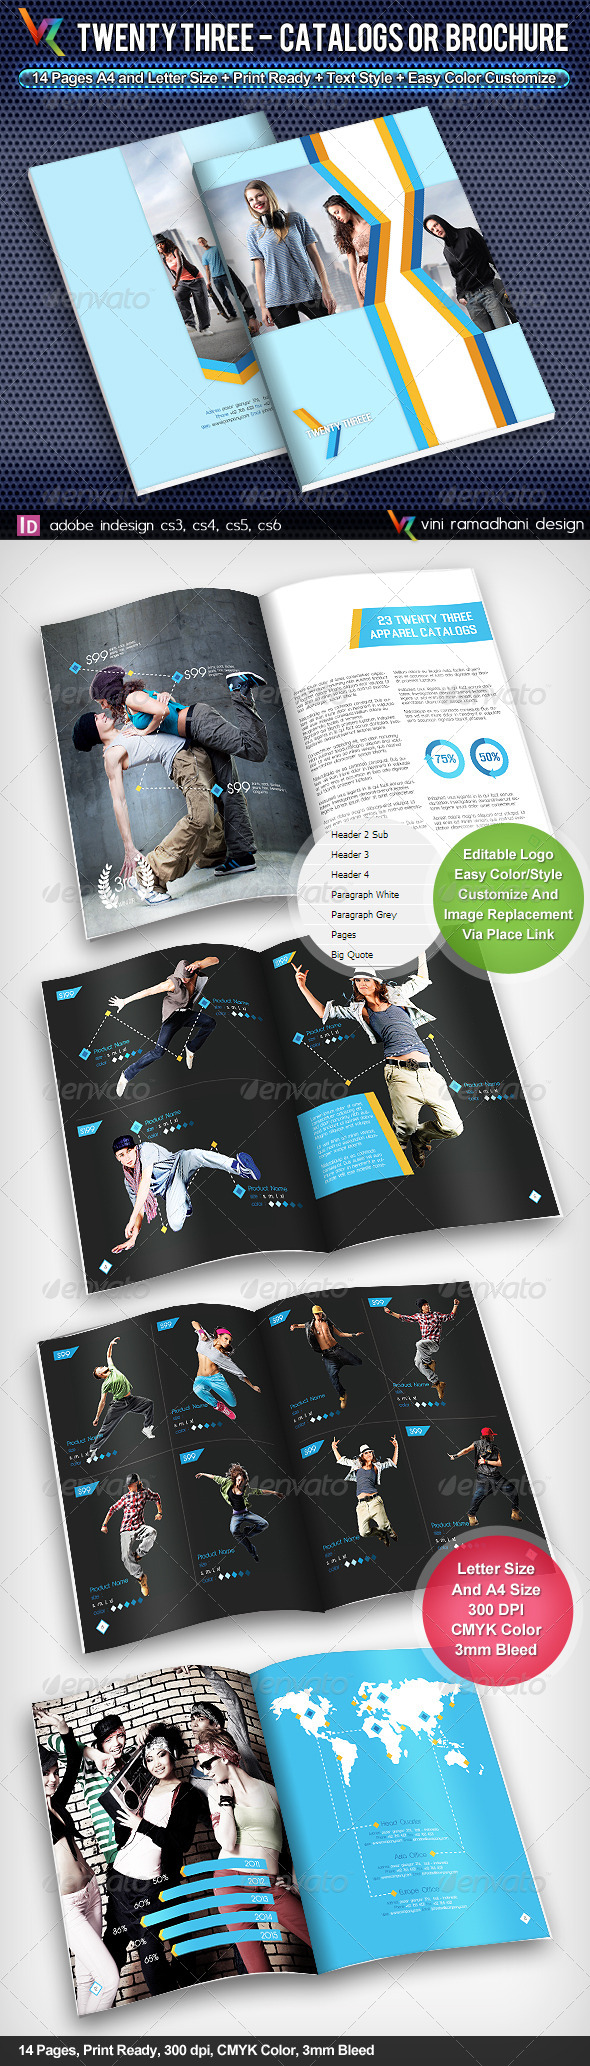 GraphicRiver Twenty Three Catalogs Or Brochure 4110213